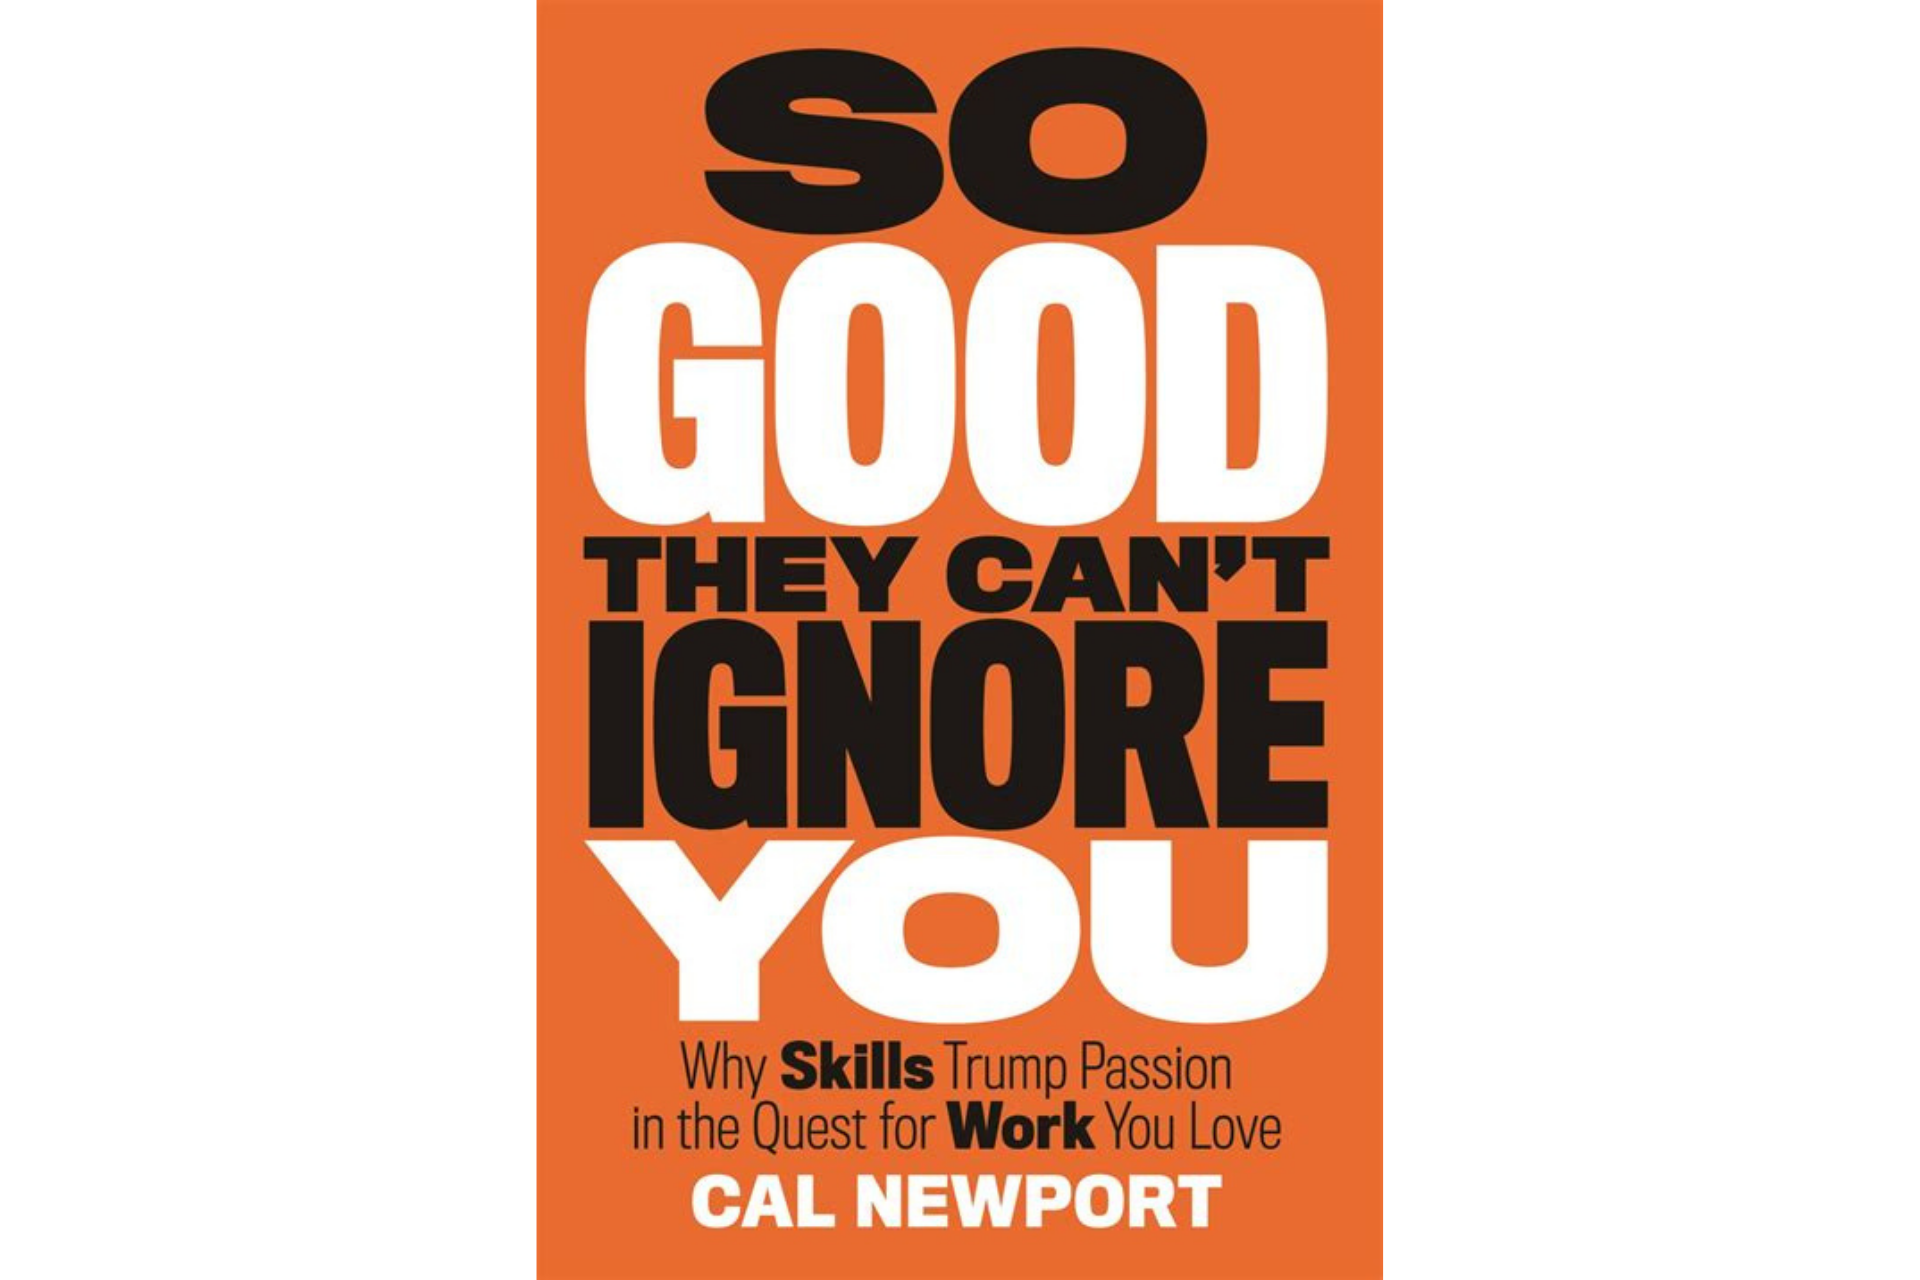 So Good They Can't Ignore You by Cal Newport